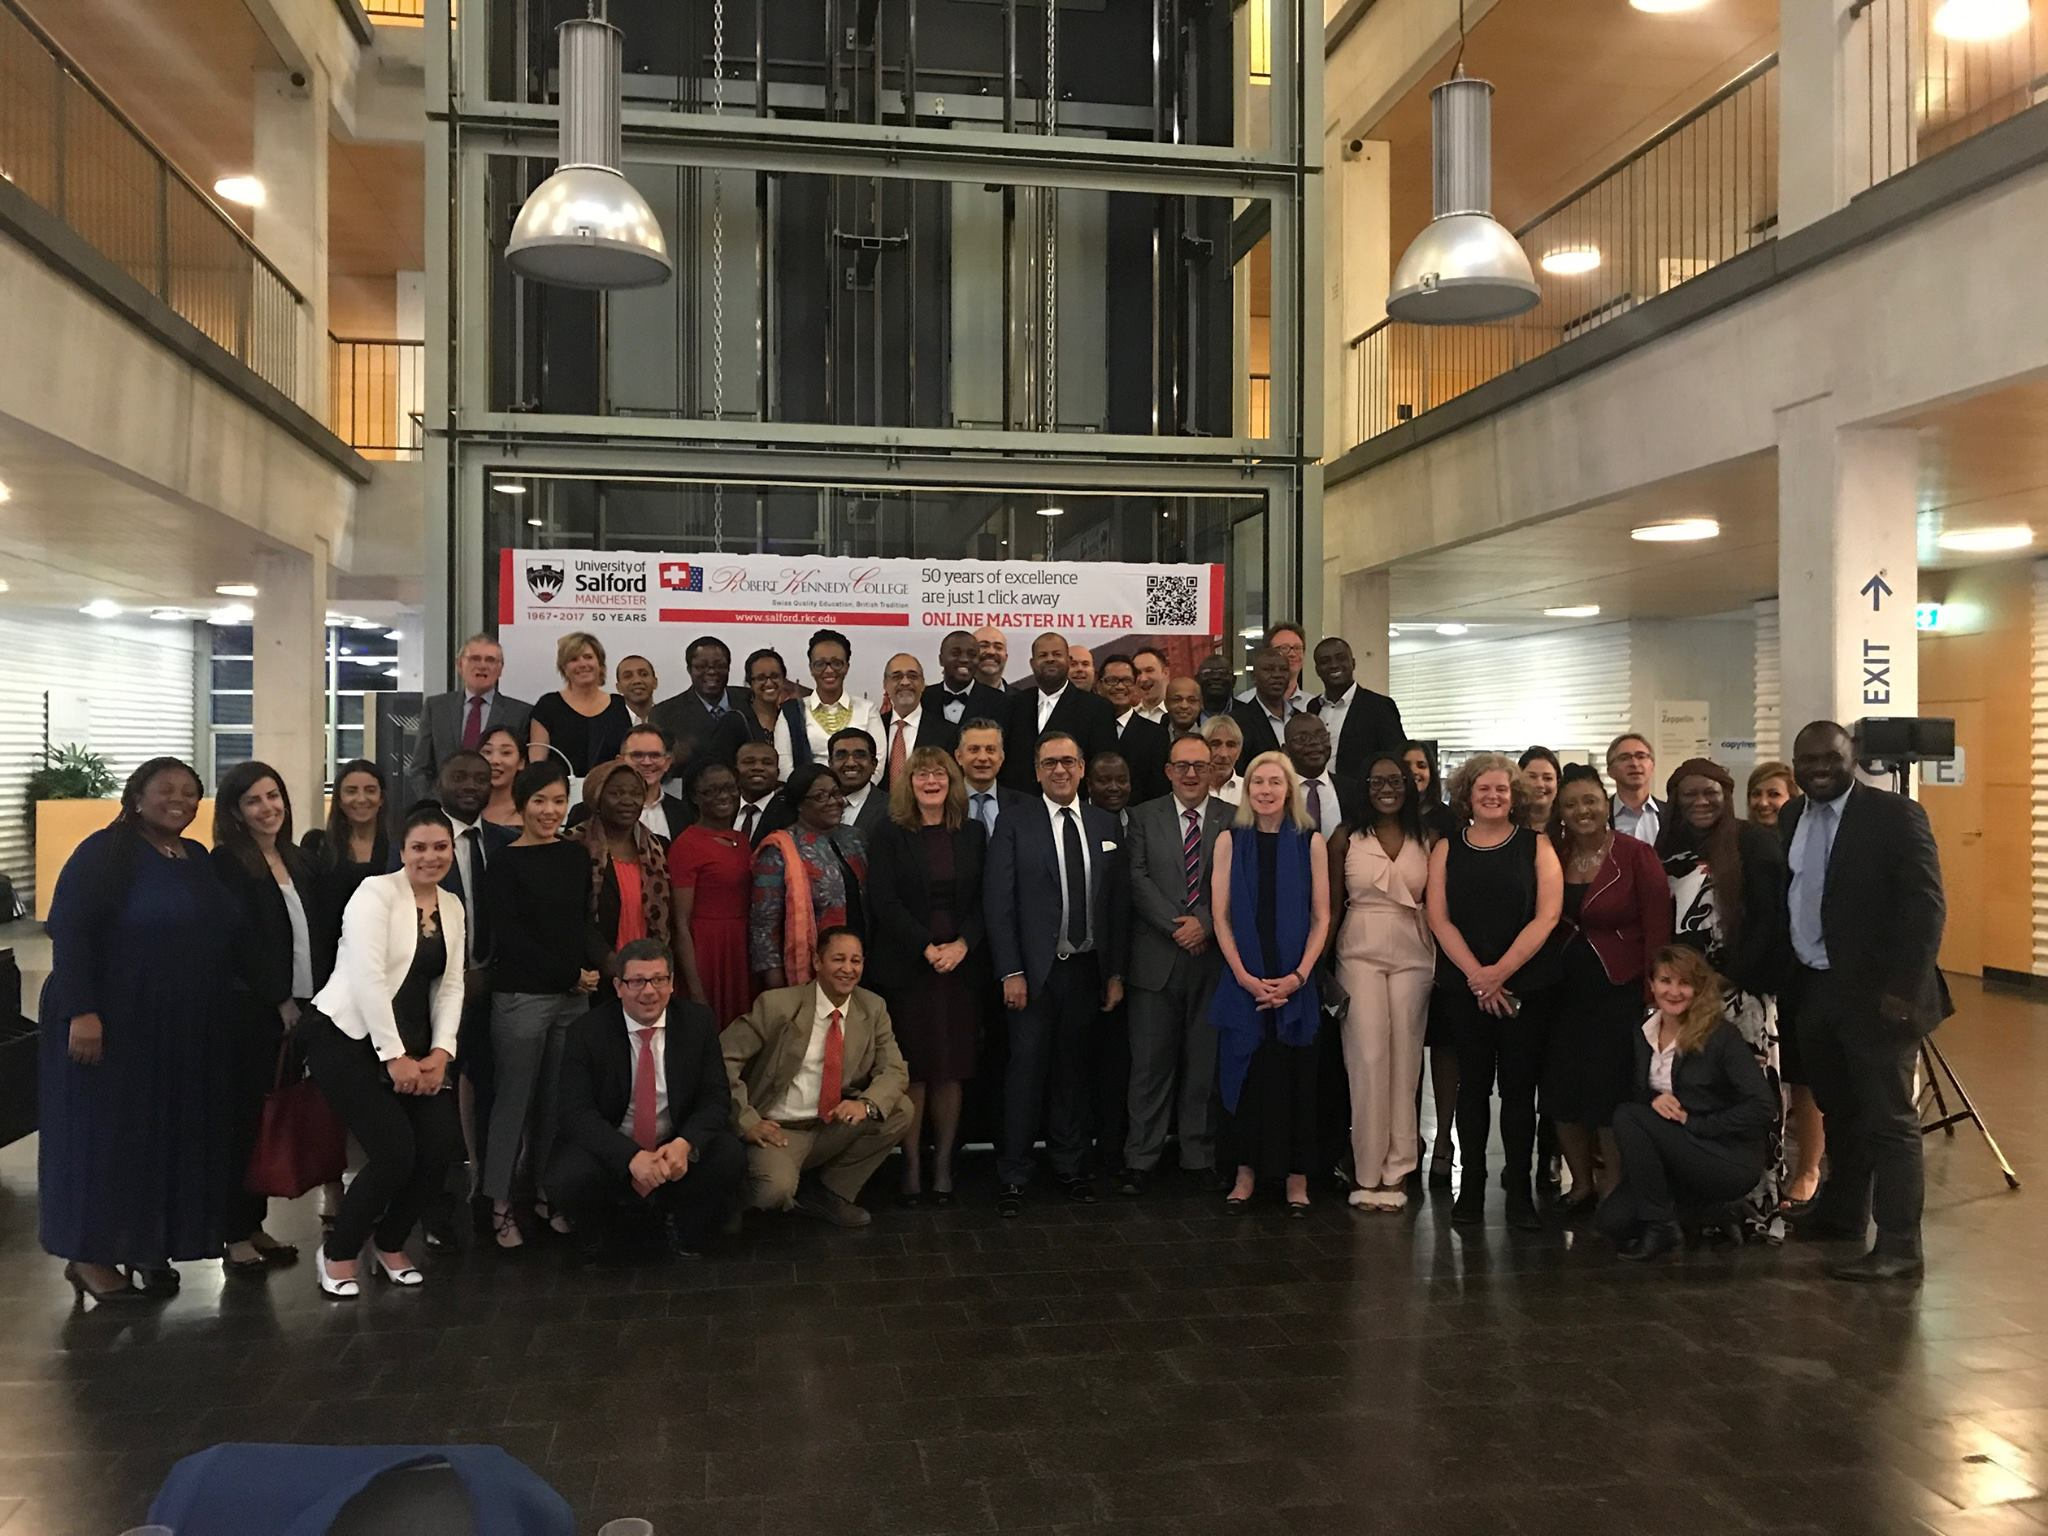 Celebrating 50 years of University of Salford